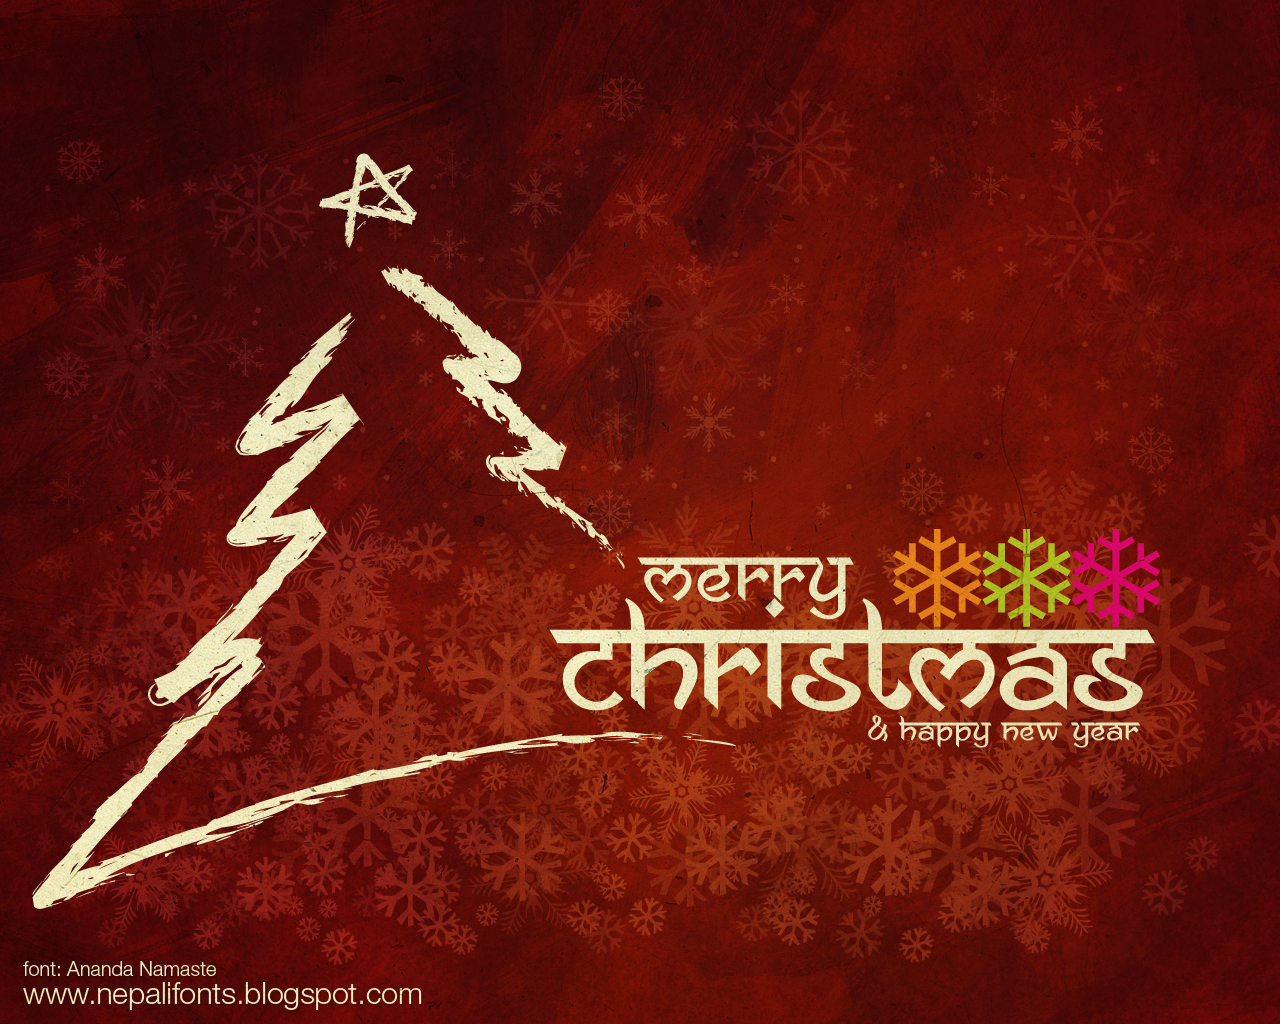 Merry Christmas & Happy New Year Greetings wallpapers 2012